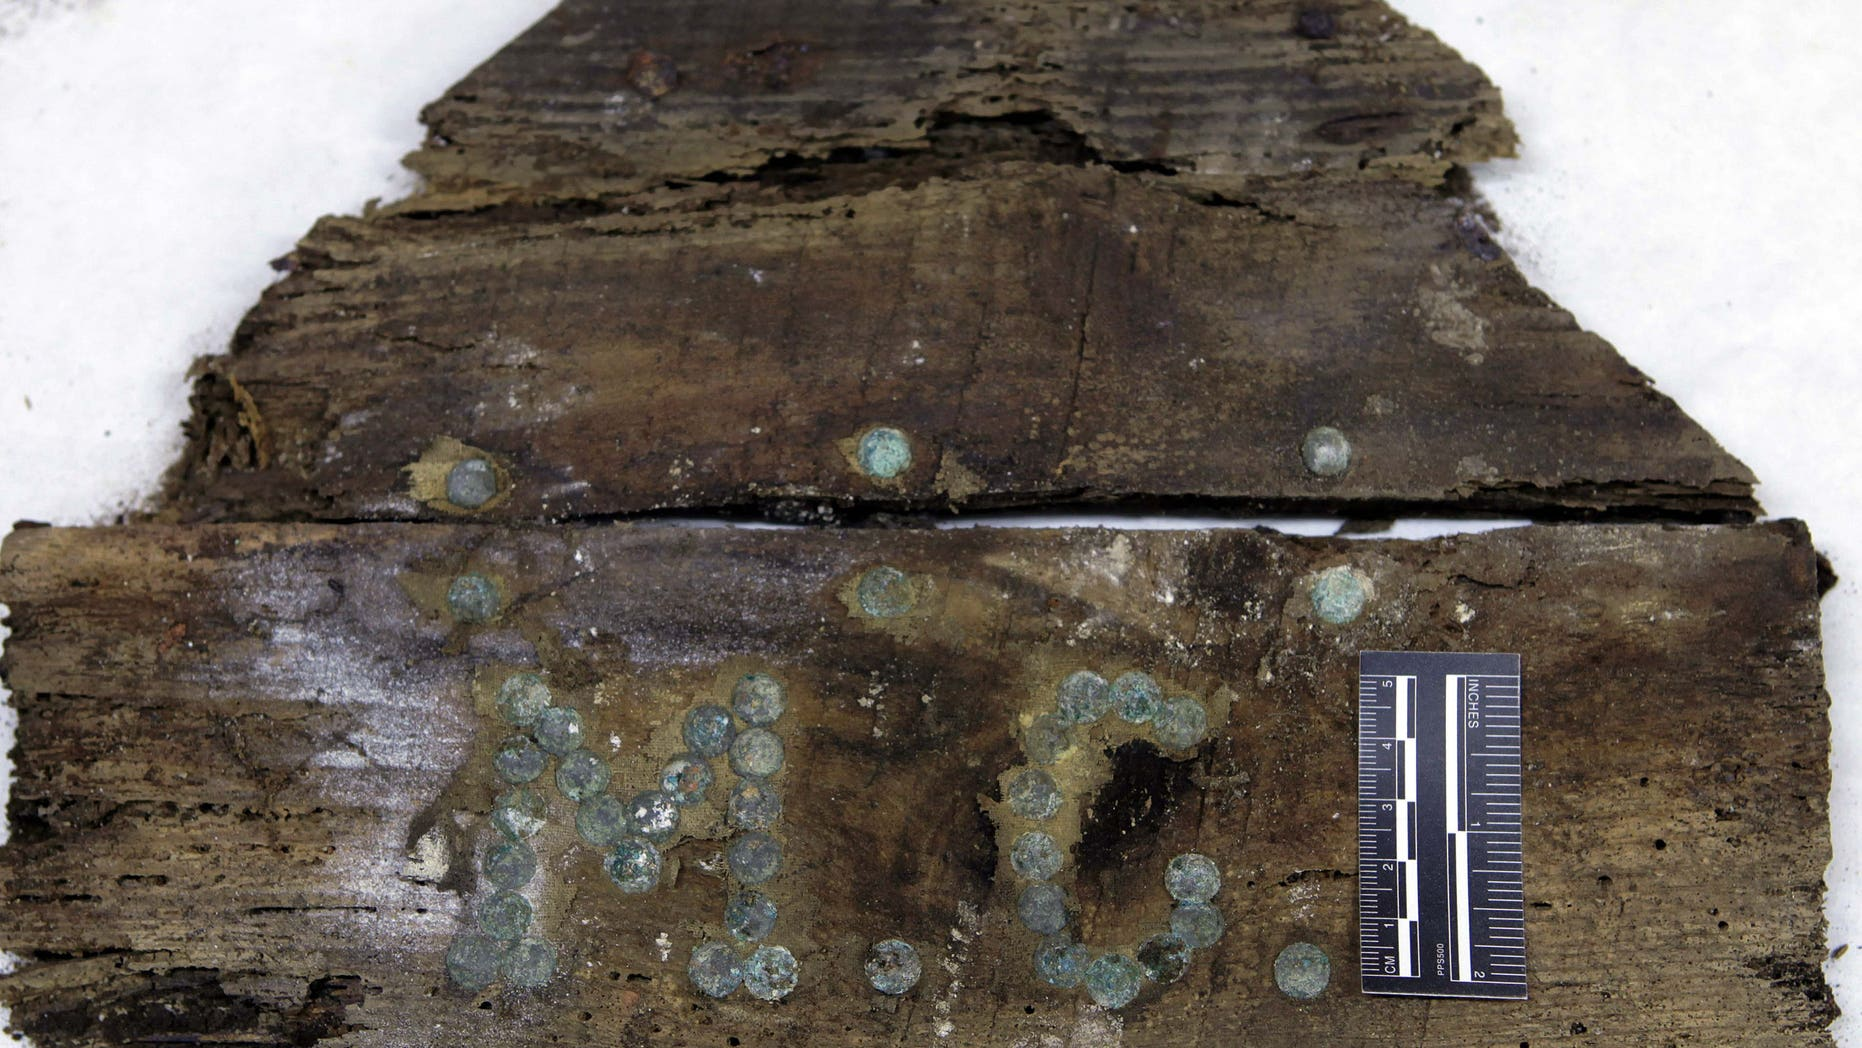 """In this photo taken on Saturday, Jan. 24, 2015 and provided by Aranzadi Science Society, the initials """"M.C"""" are seen on a plank of a coffin found on unidentified graves in the chapelâs crypt of the closed order Convent of the Barefoot Trinitarians in Madrid's historic Barrio de las Letras, or Literary Quarter. Experts searching for the remains of Miguel de Cervantes, the author of  'Don Quixote'  who was buried in 1616 at the Convent but the exact whereabouts of his grave are unknown, have found a casket bearing the initials âM.C.â with bones inside it in crypt underneath a cloistered convent. Archeologists say they made the find over the weekend after excavations to solve the centuries-old mystery of where the great Spanish writer was laid to rest. (AP Photo/Aranzadi Science Society)"""